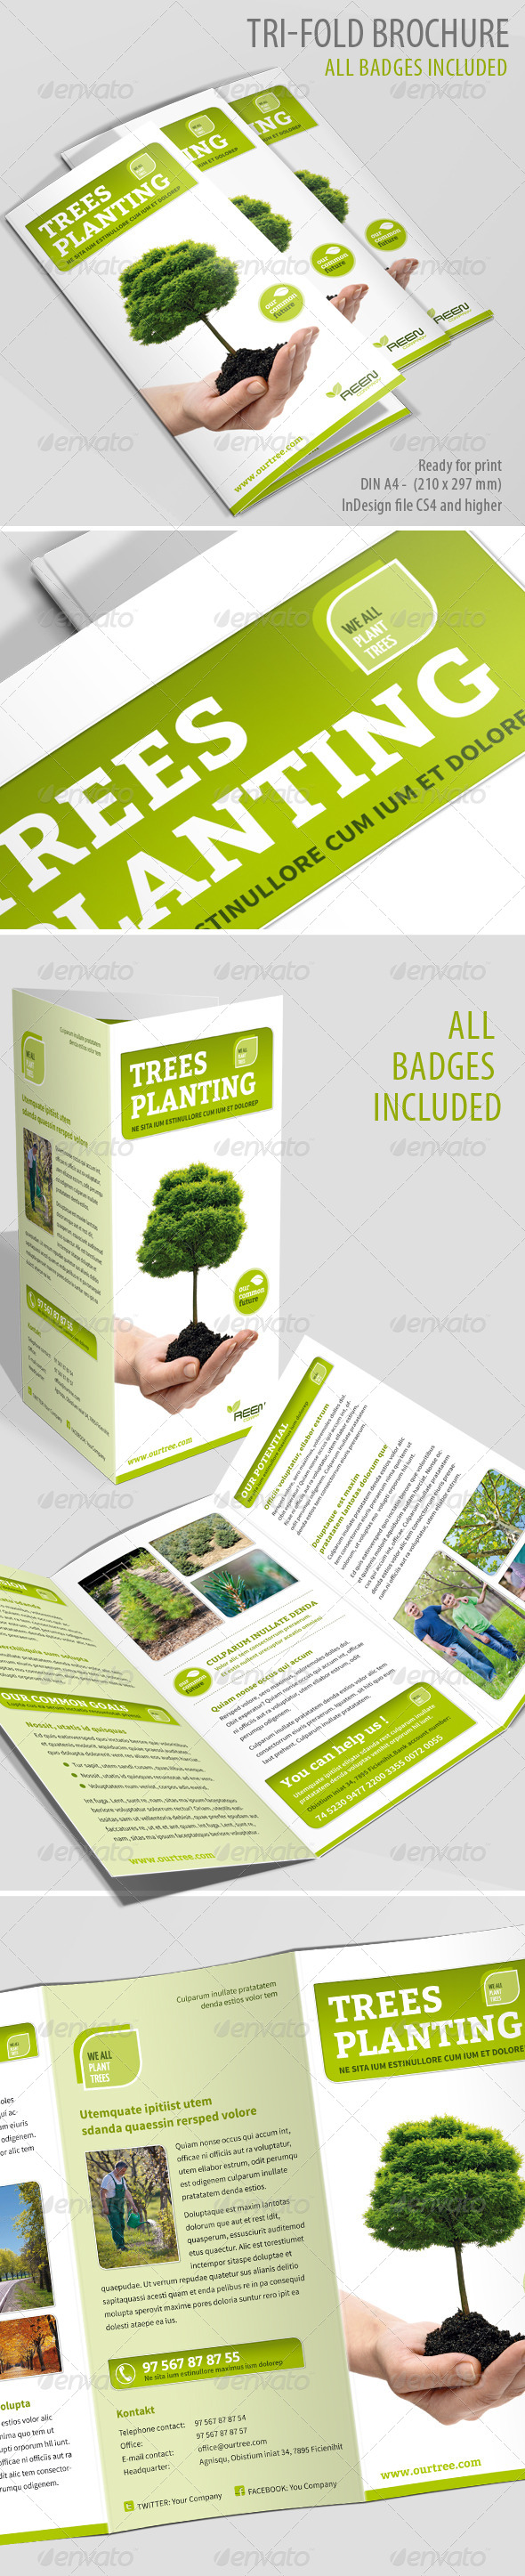 Tree Planting TriFold Brochure GraphicRiver Like this